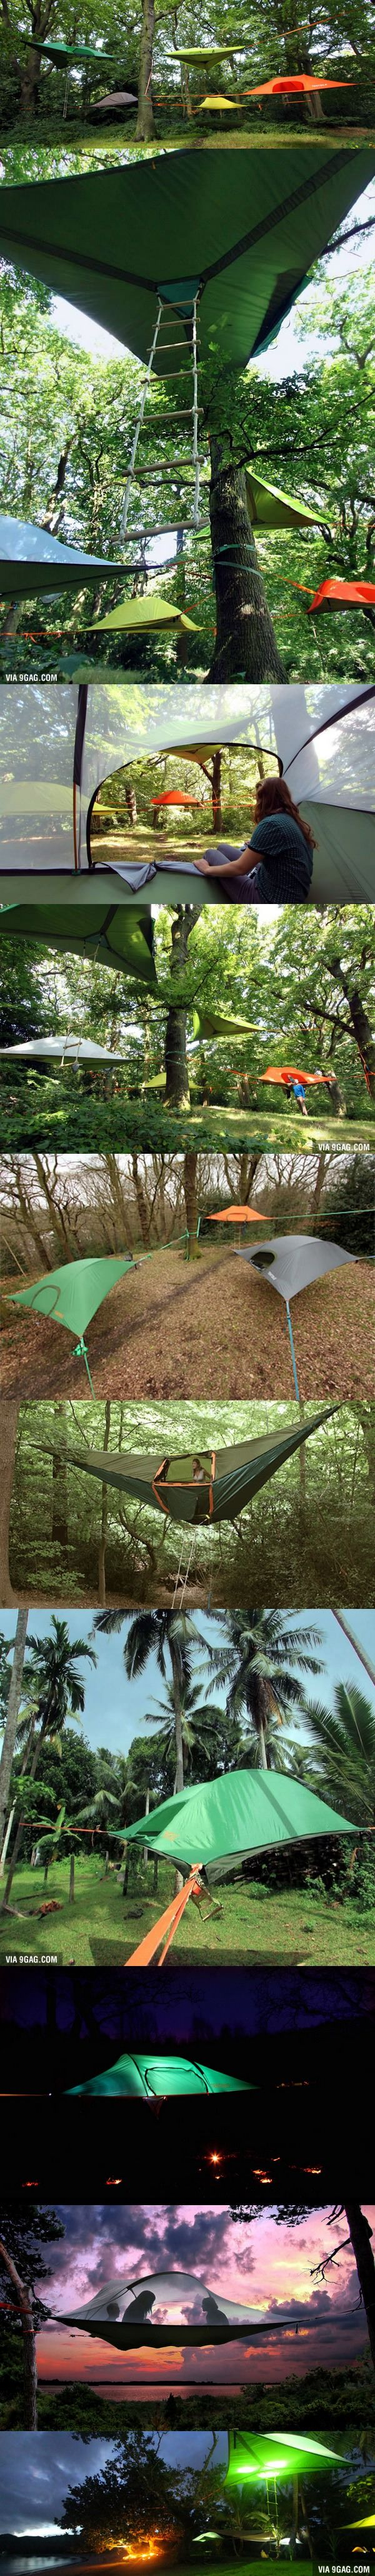 Tree tents! I might consider camping if I could sleep in one of these.